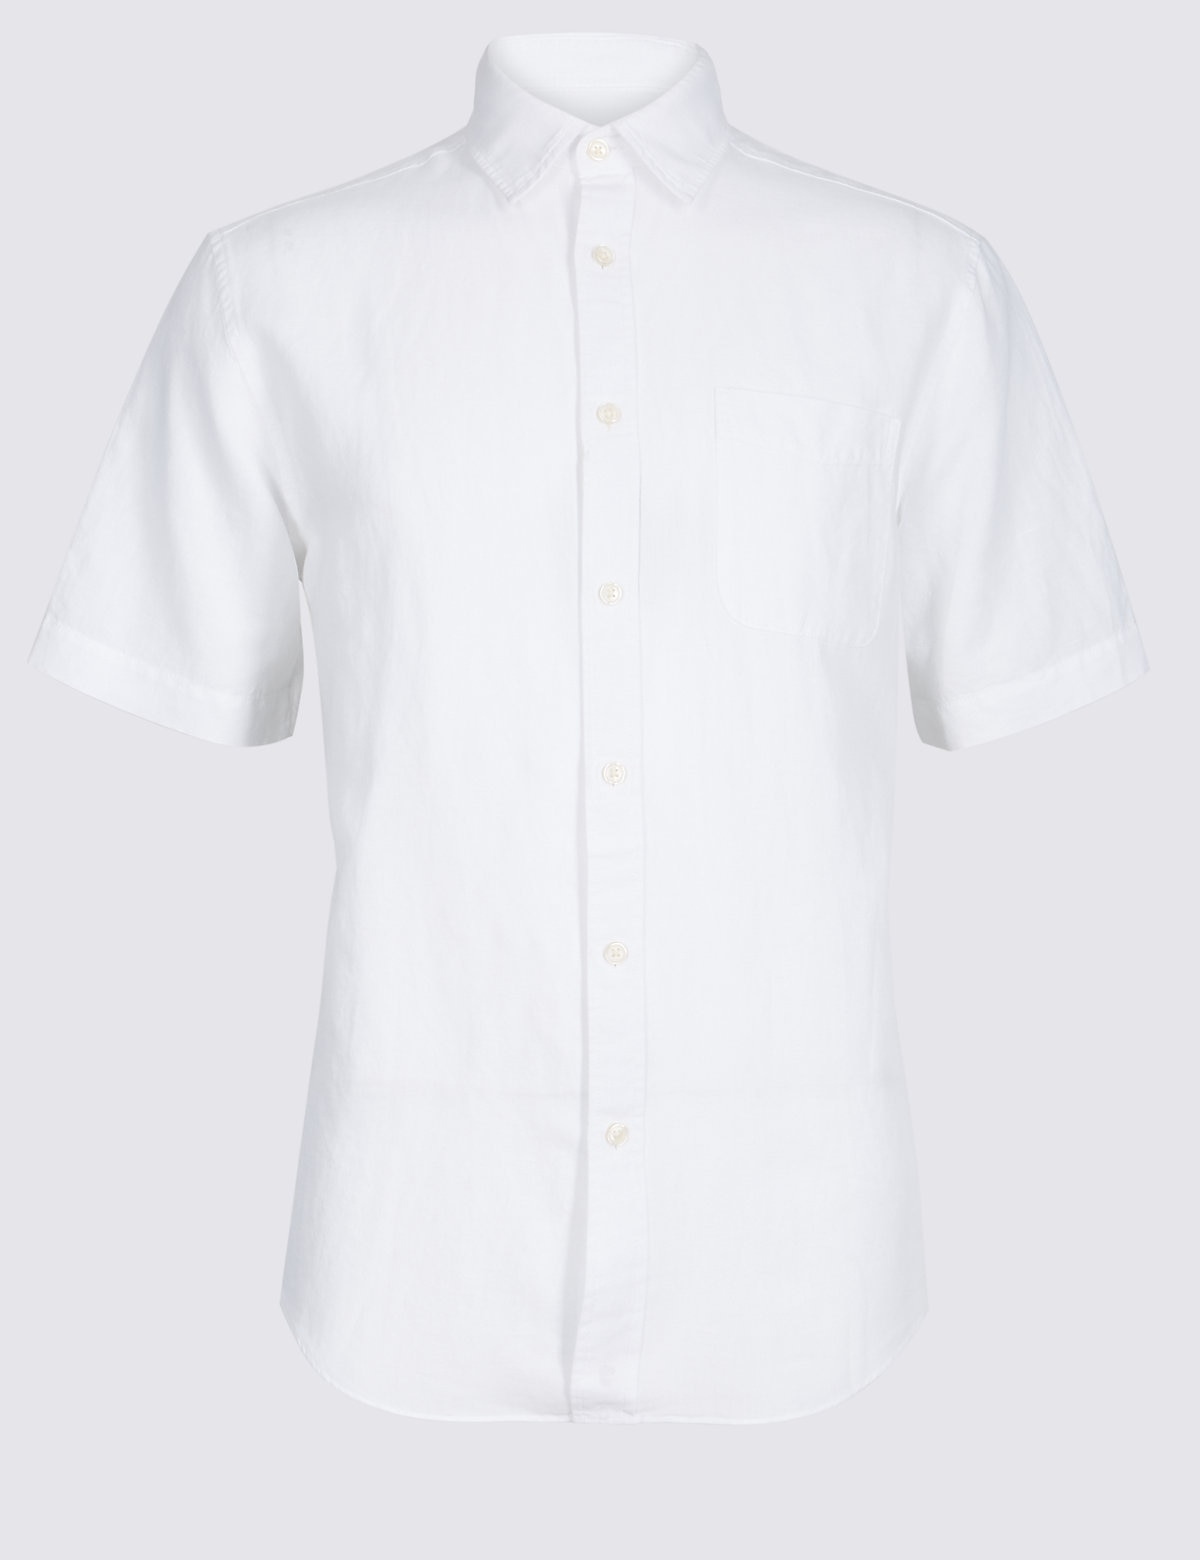 Marks & Spencer White Linen Rich Shirt with Pocket